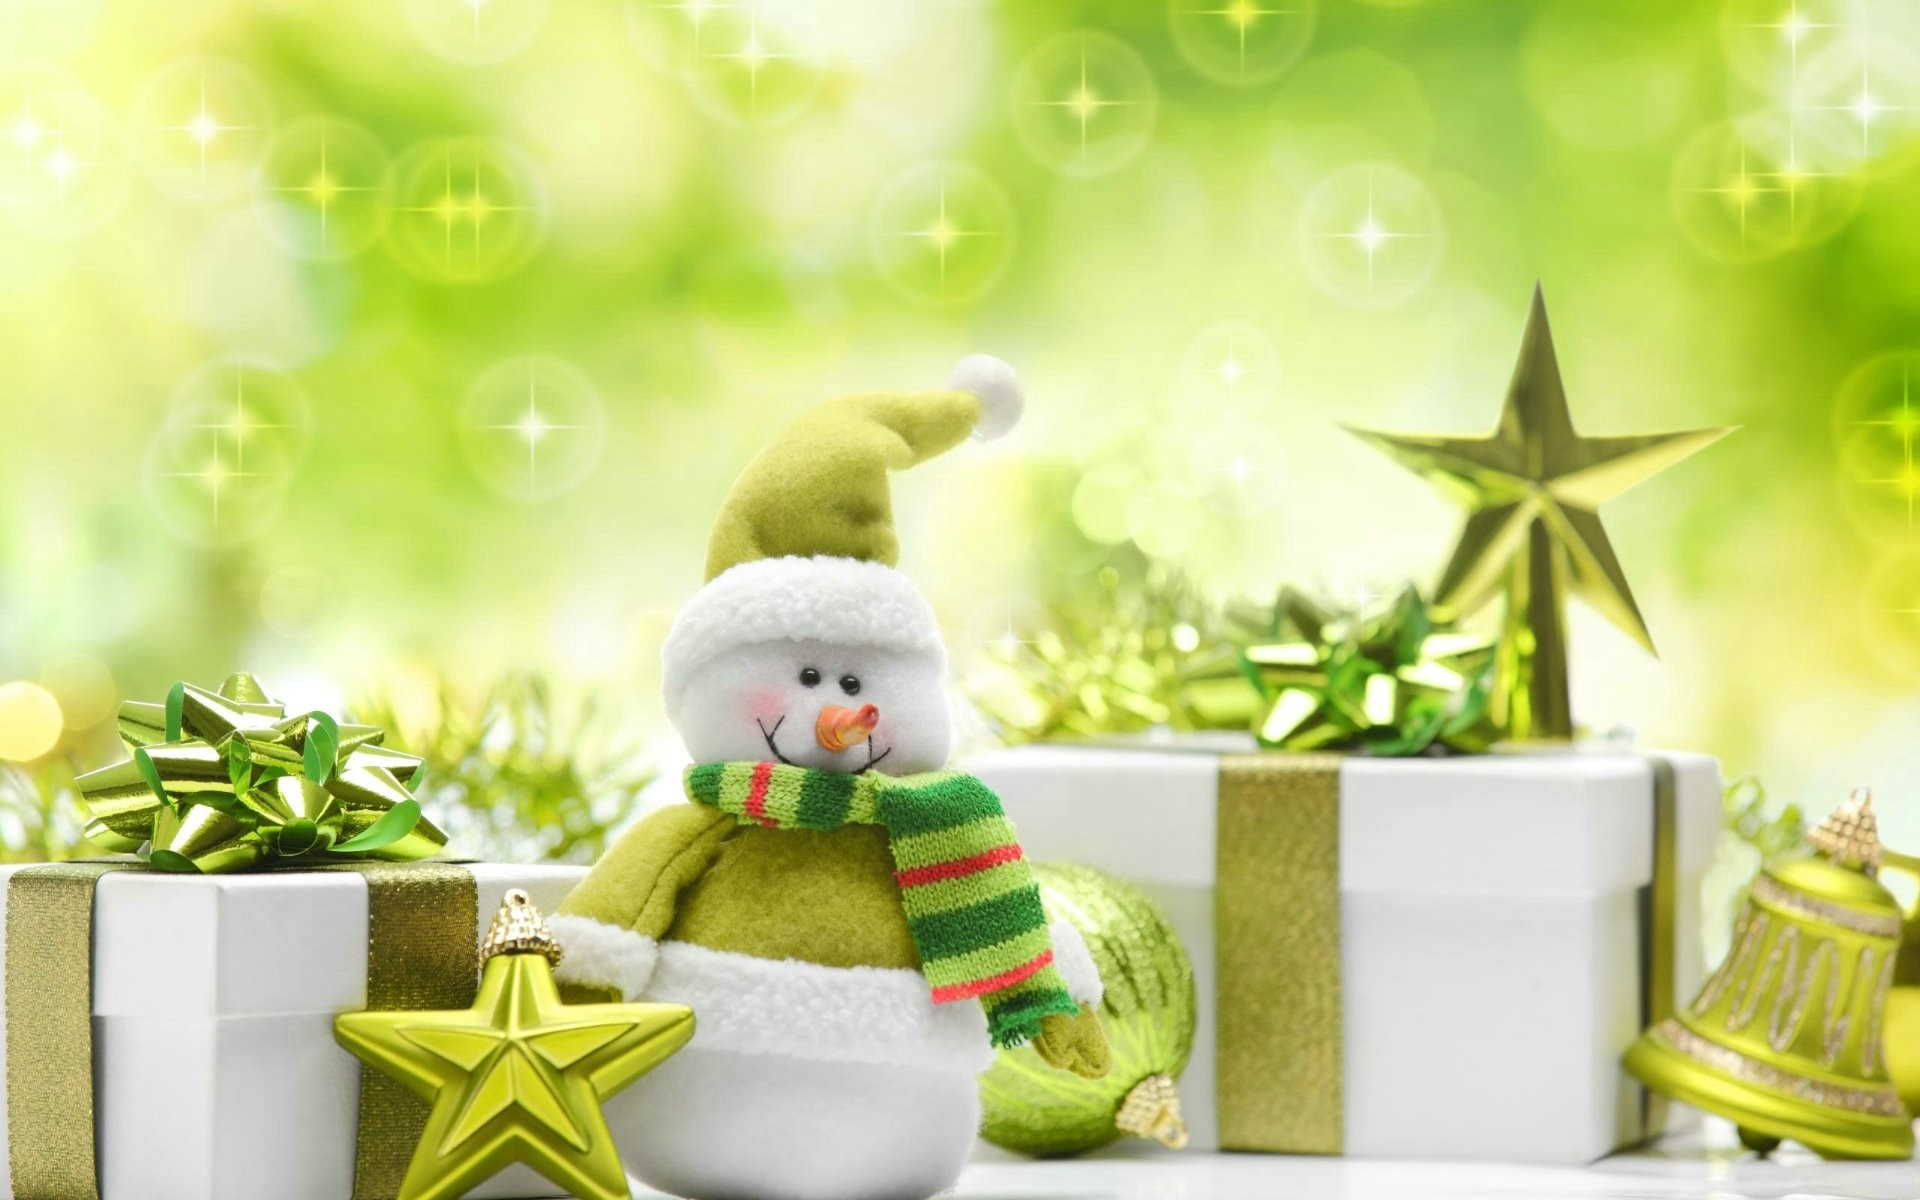 Res: 1920x1200, Green Christmas Presents